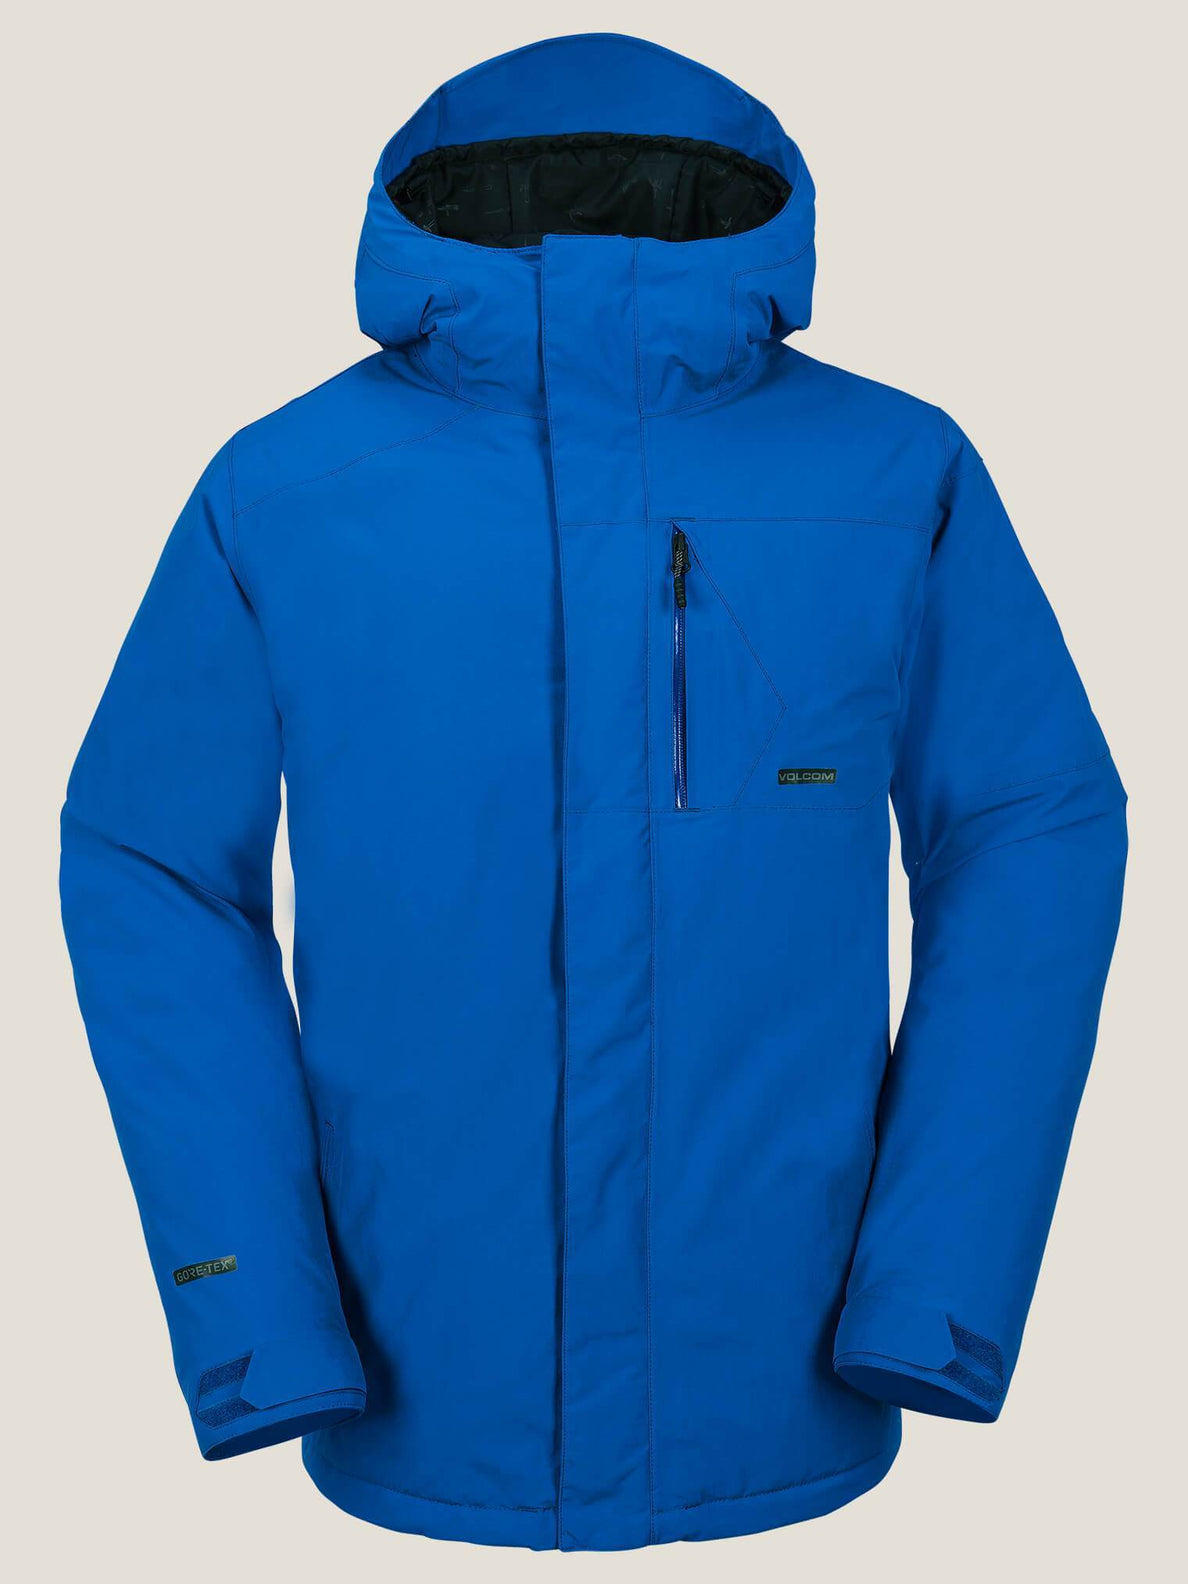 L Insulated Gore-tex® Jacket In Snow Royal, Front View